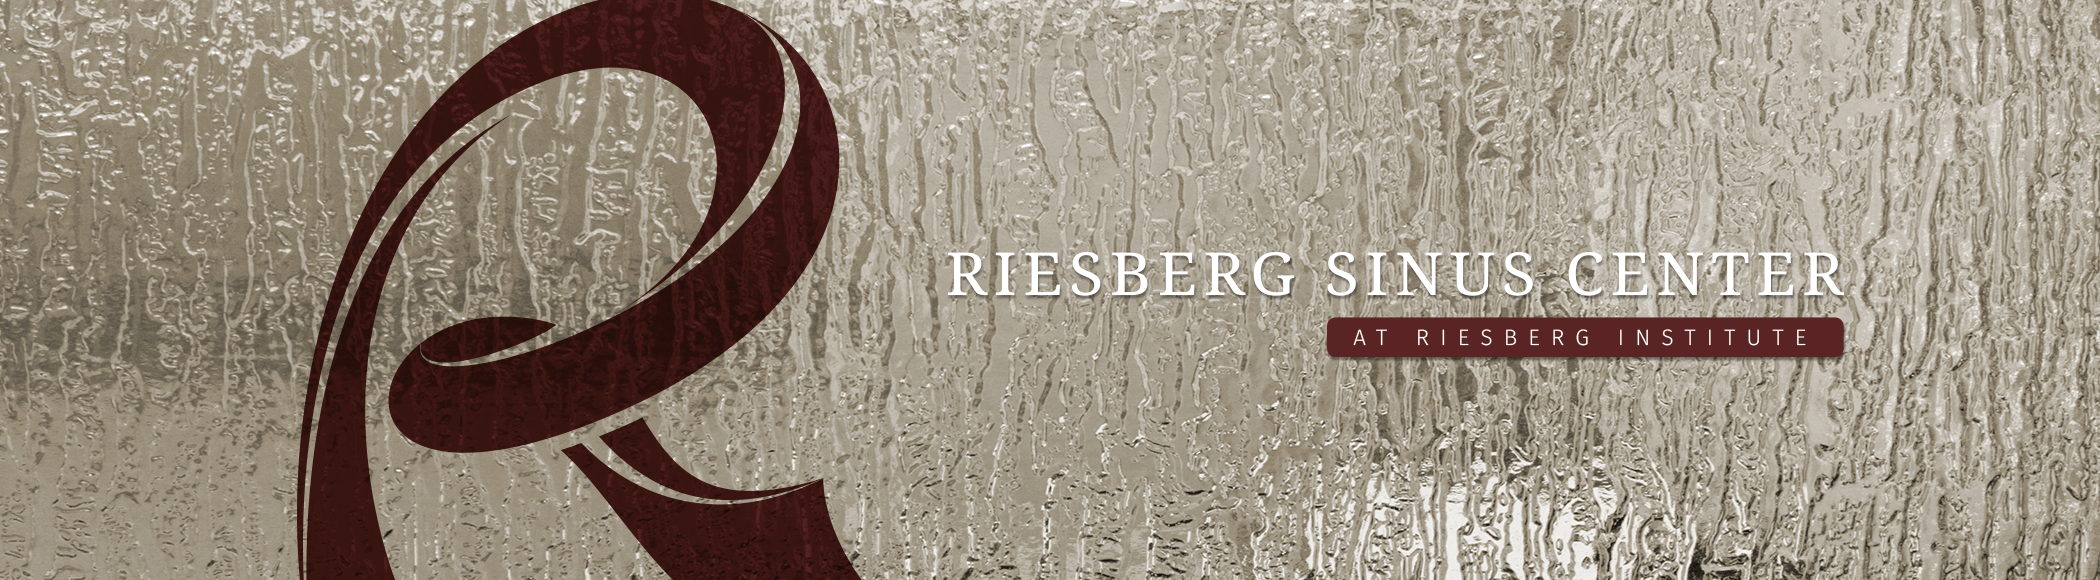 Riesberg Sinus Center at Riesberg Institute logo